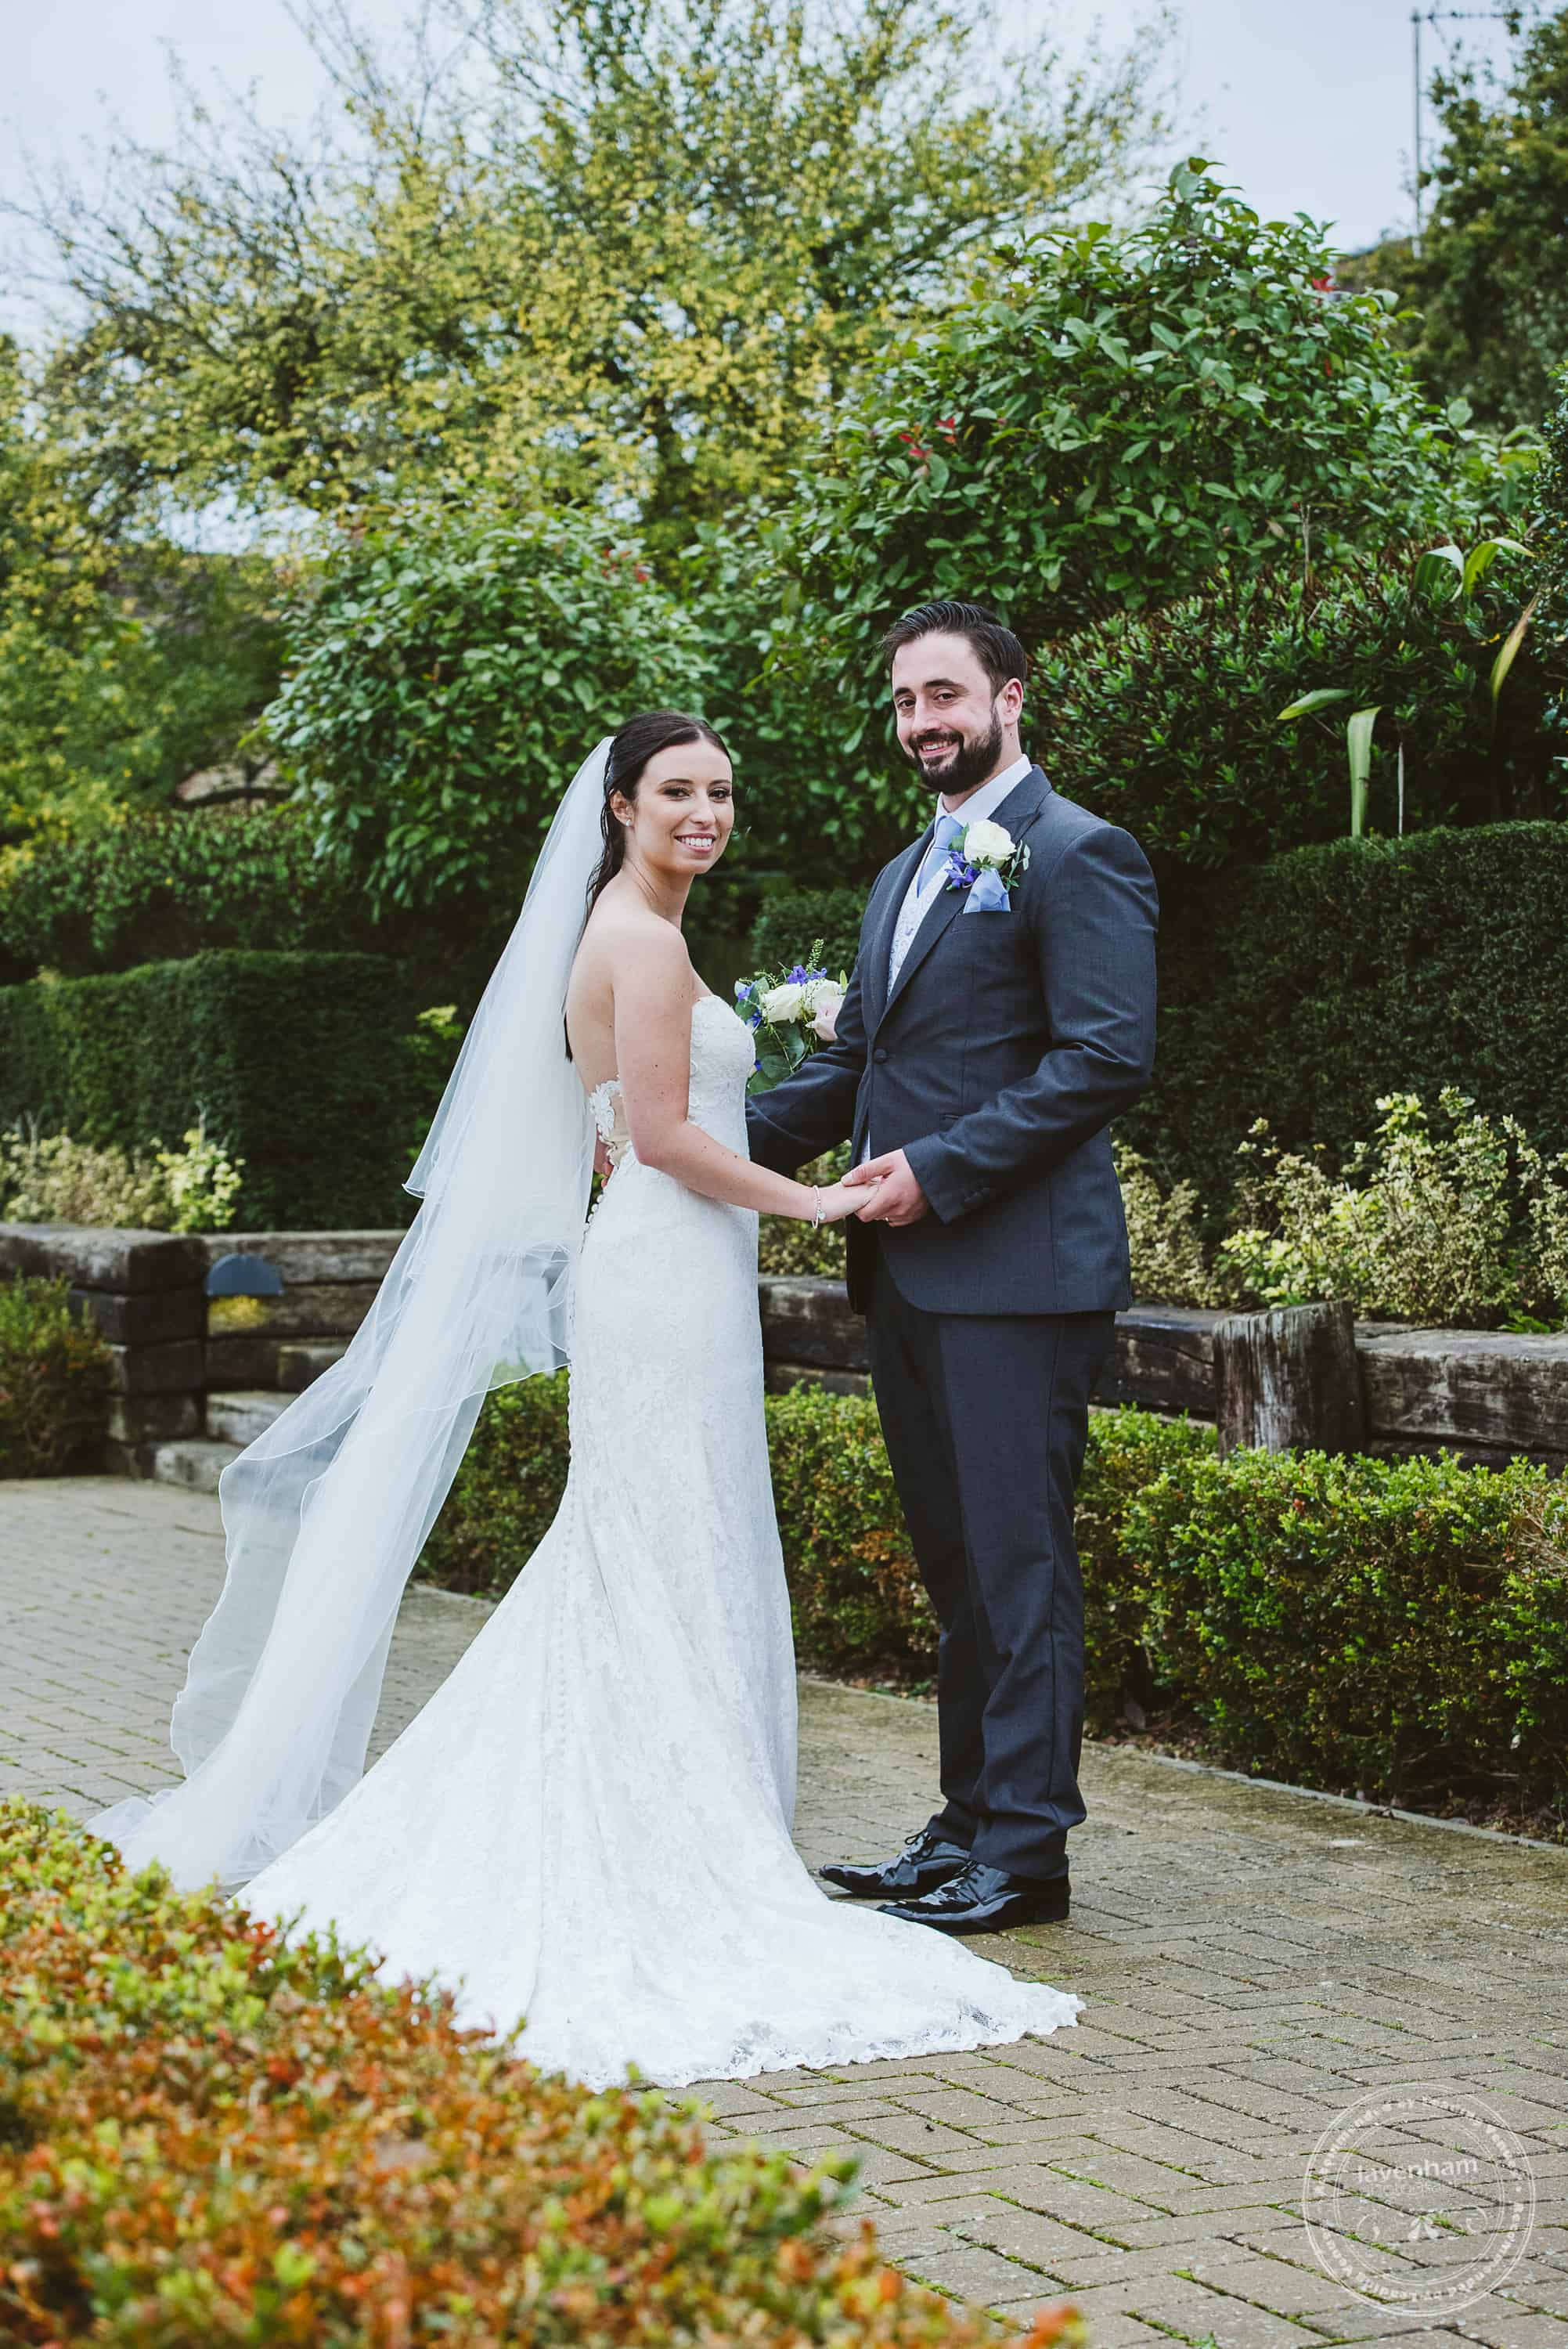 261019 Bull and Willow Room Essex Wedding Photographer 066